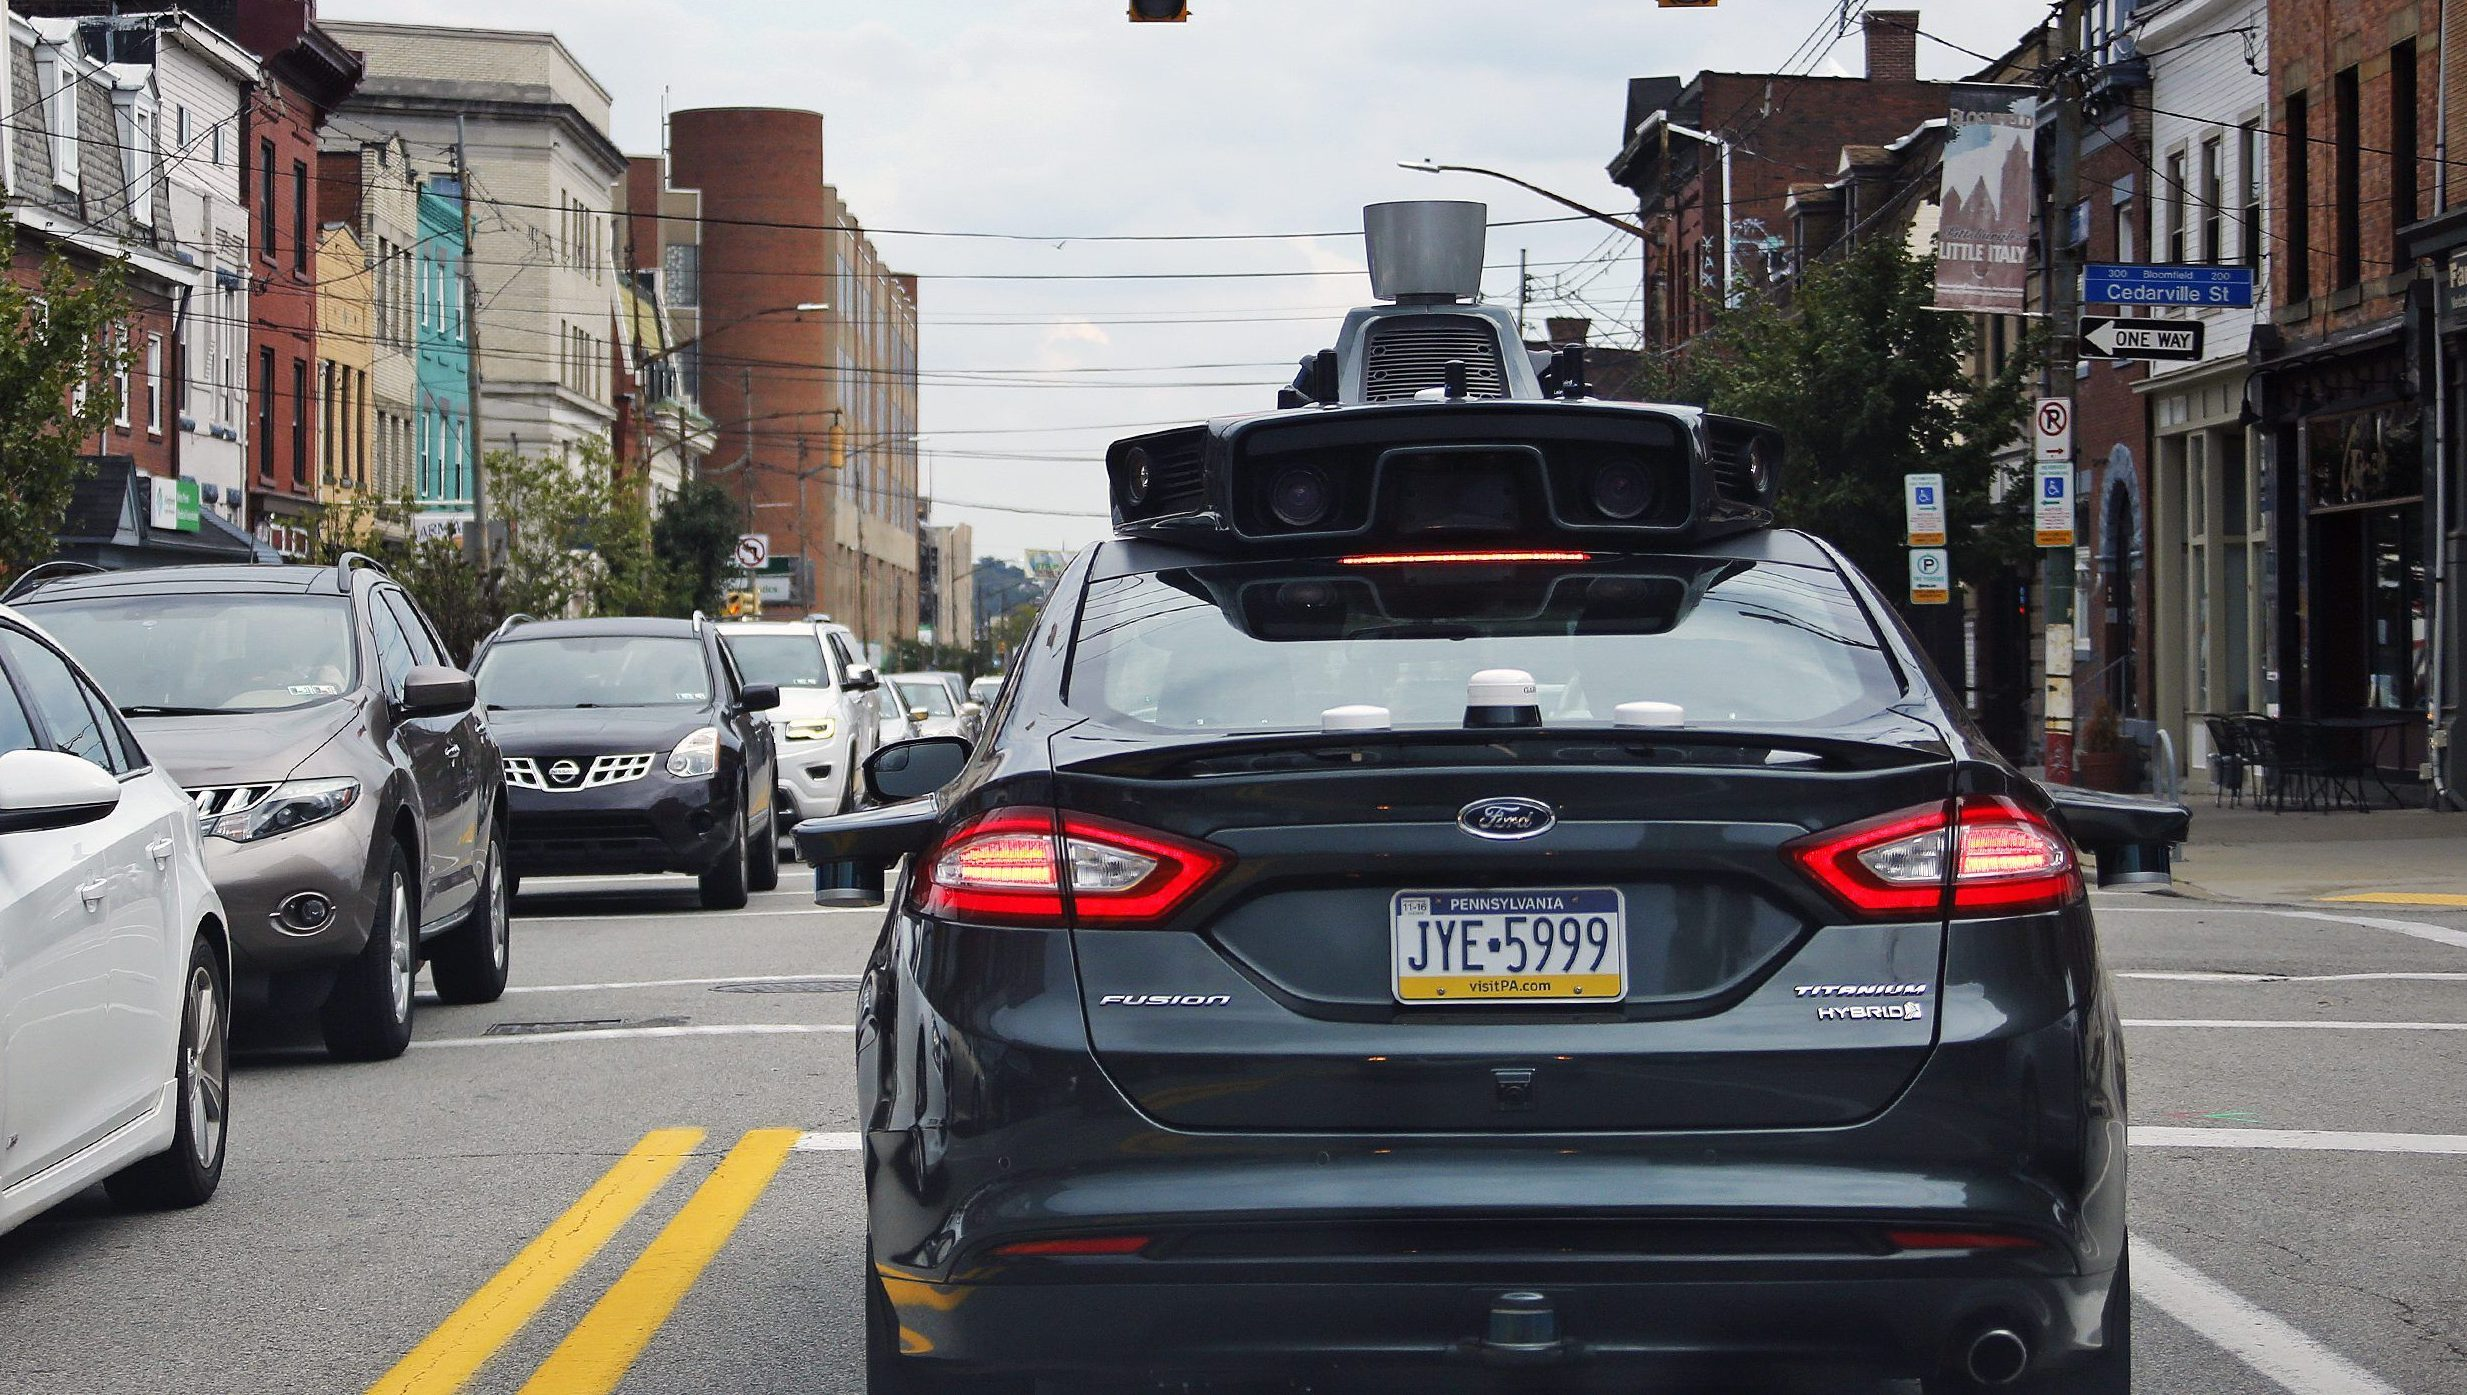 A self driving Uber car drives on Liberty Ave. through the Bloomfield neighborhood of Pittsburgh Wednesday, Sept. 14, 2016. On Wednesday, a fleet of self-driving Ford Fusions began picking up Uber riders who opted to participate in a test program. While the vehicles are loaded with features that allow them to navigate on their own, an Uber engineer sits in the driver's seat and can seize control if things go awry. (AP Photo/Gene J. Puskar)